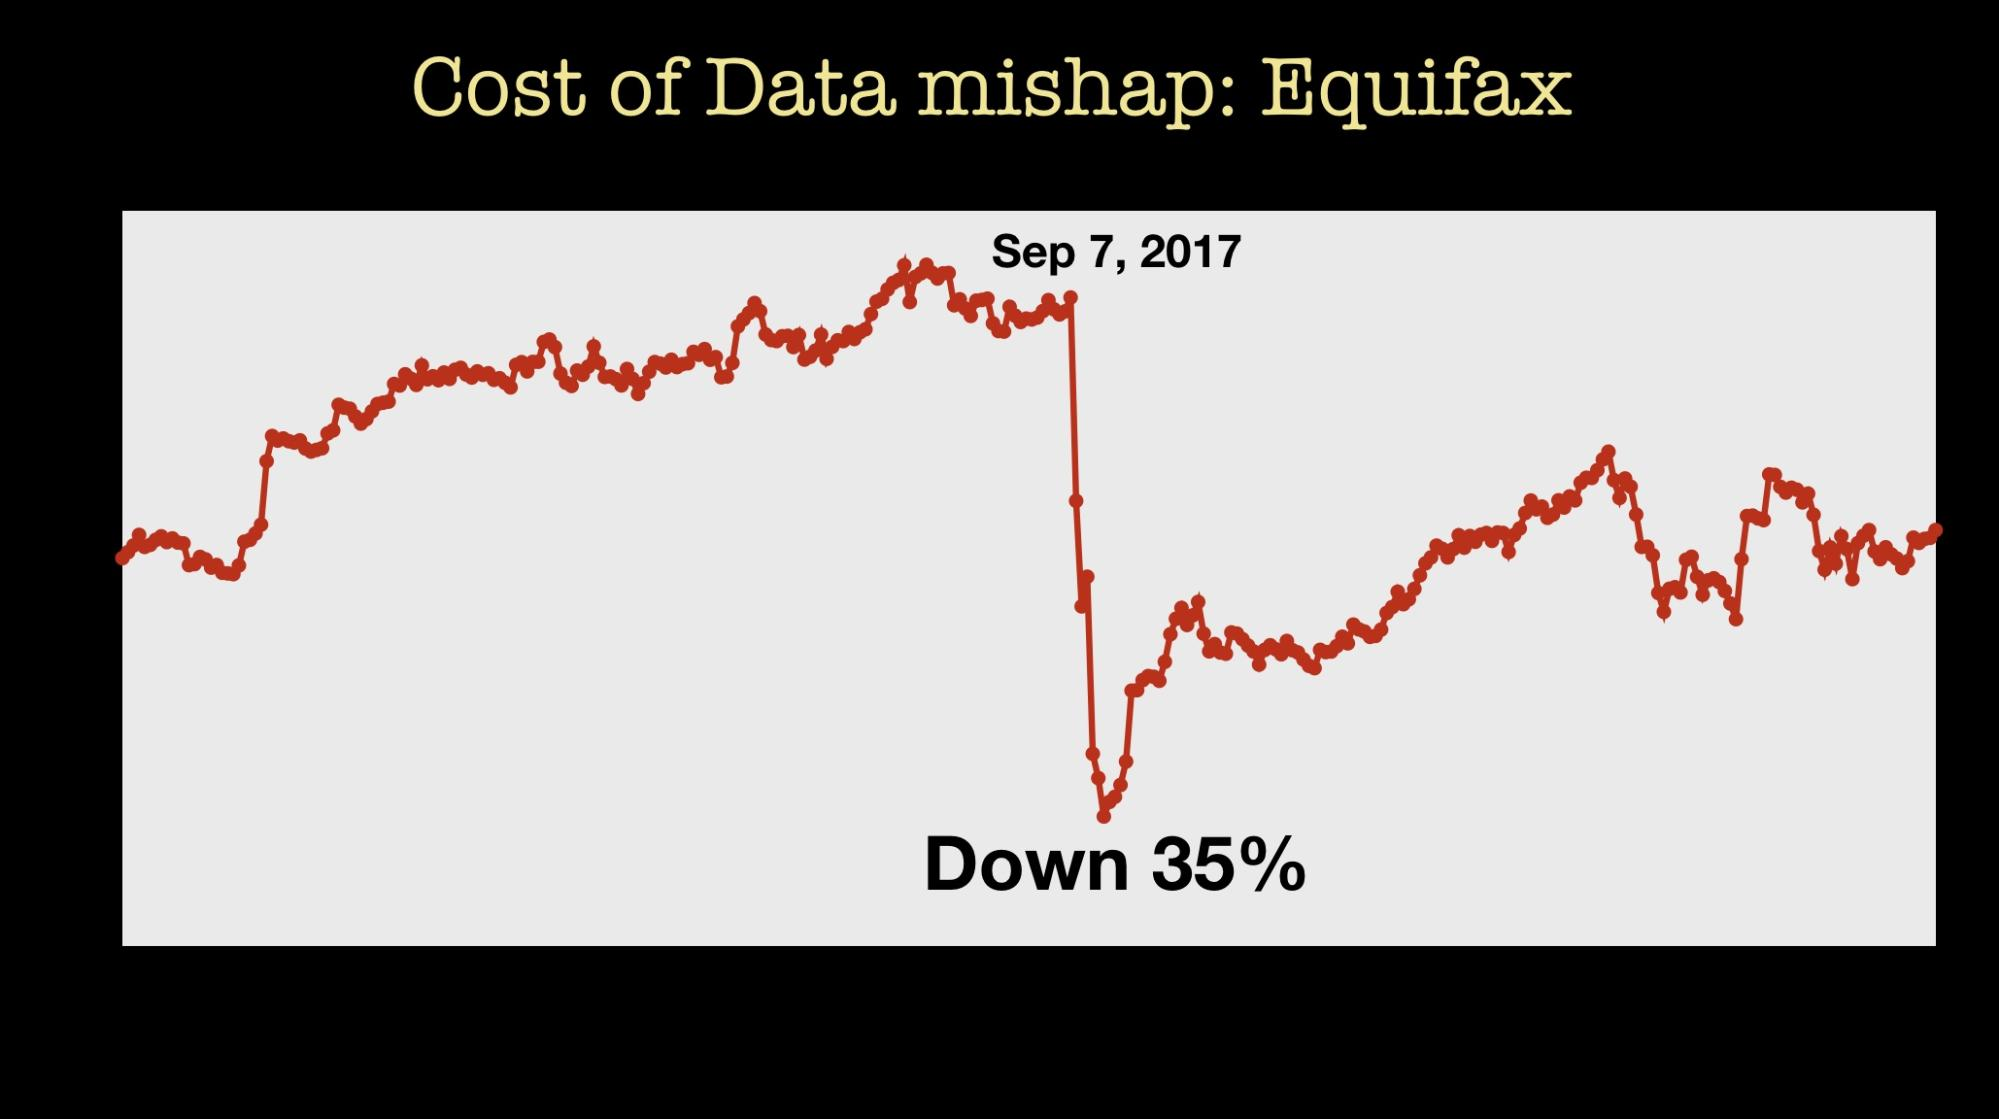 data mishap cost